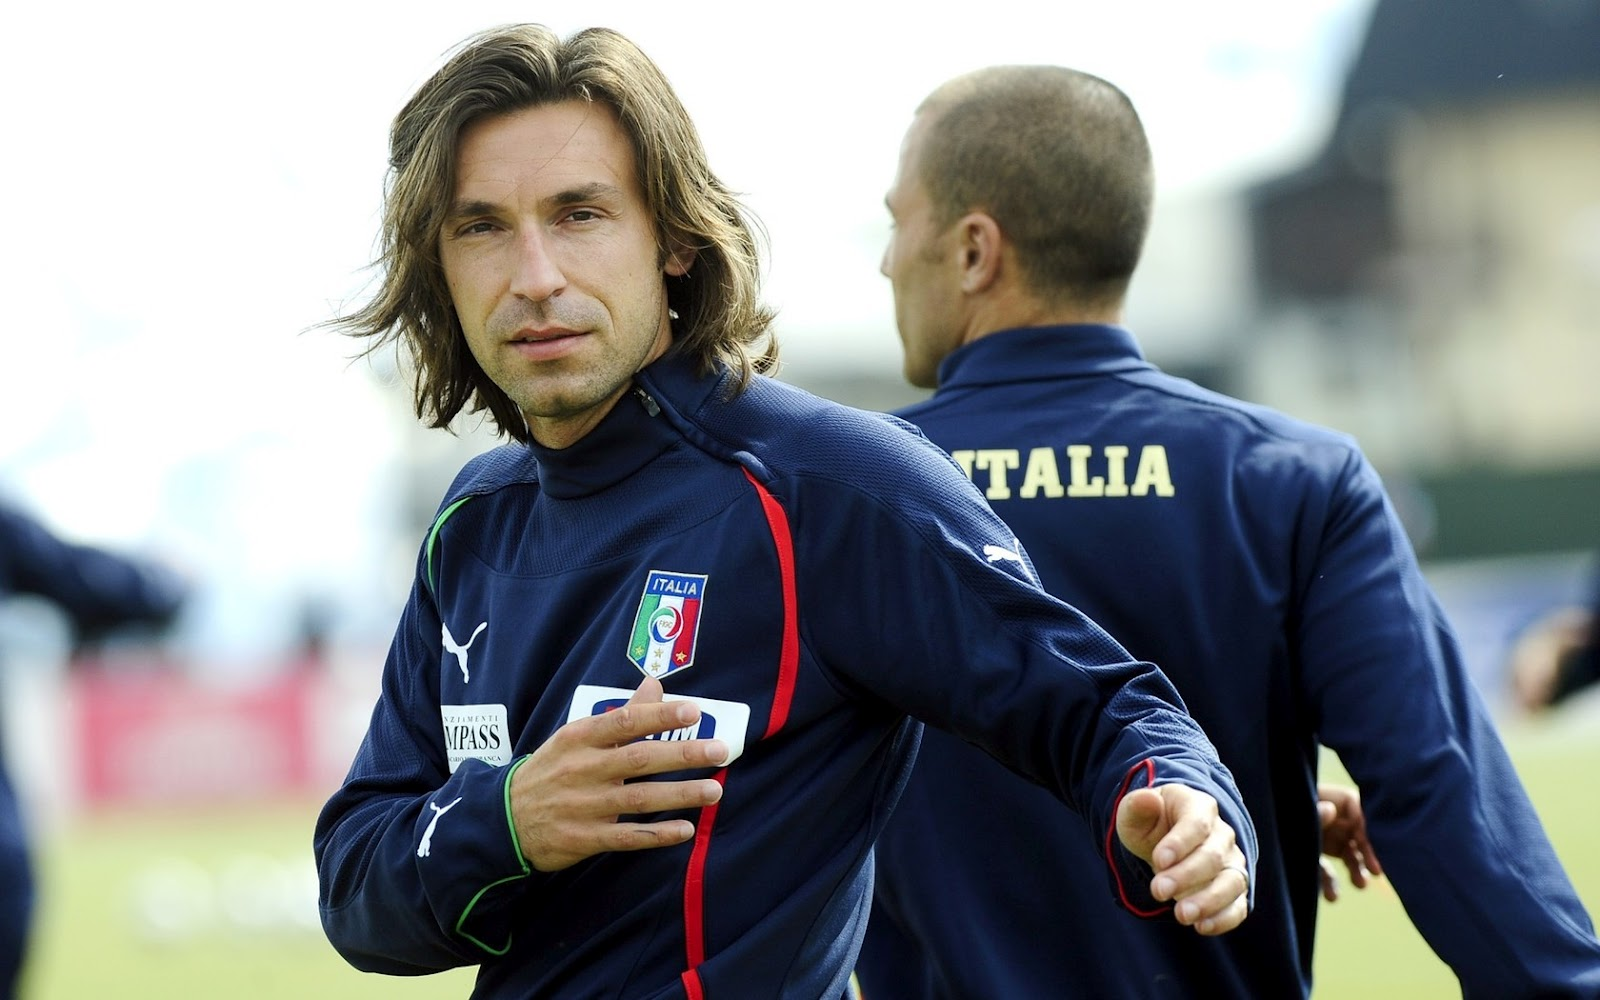 andrea pirlo Andrea pirlo in 2018: is he married or dating a new girlfriend how rich is he does andrea pirlo have tattoos does he smoke + body measurements & other facts.